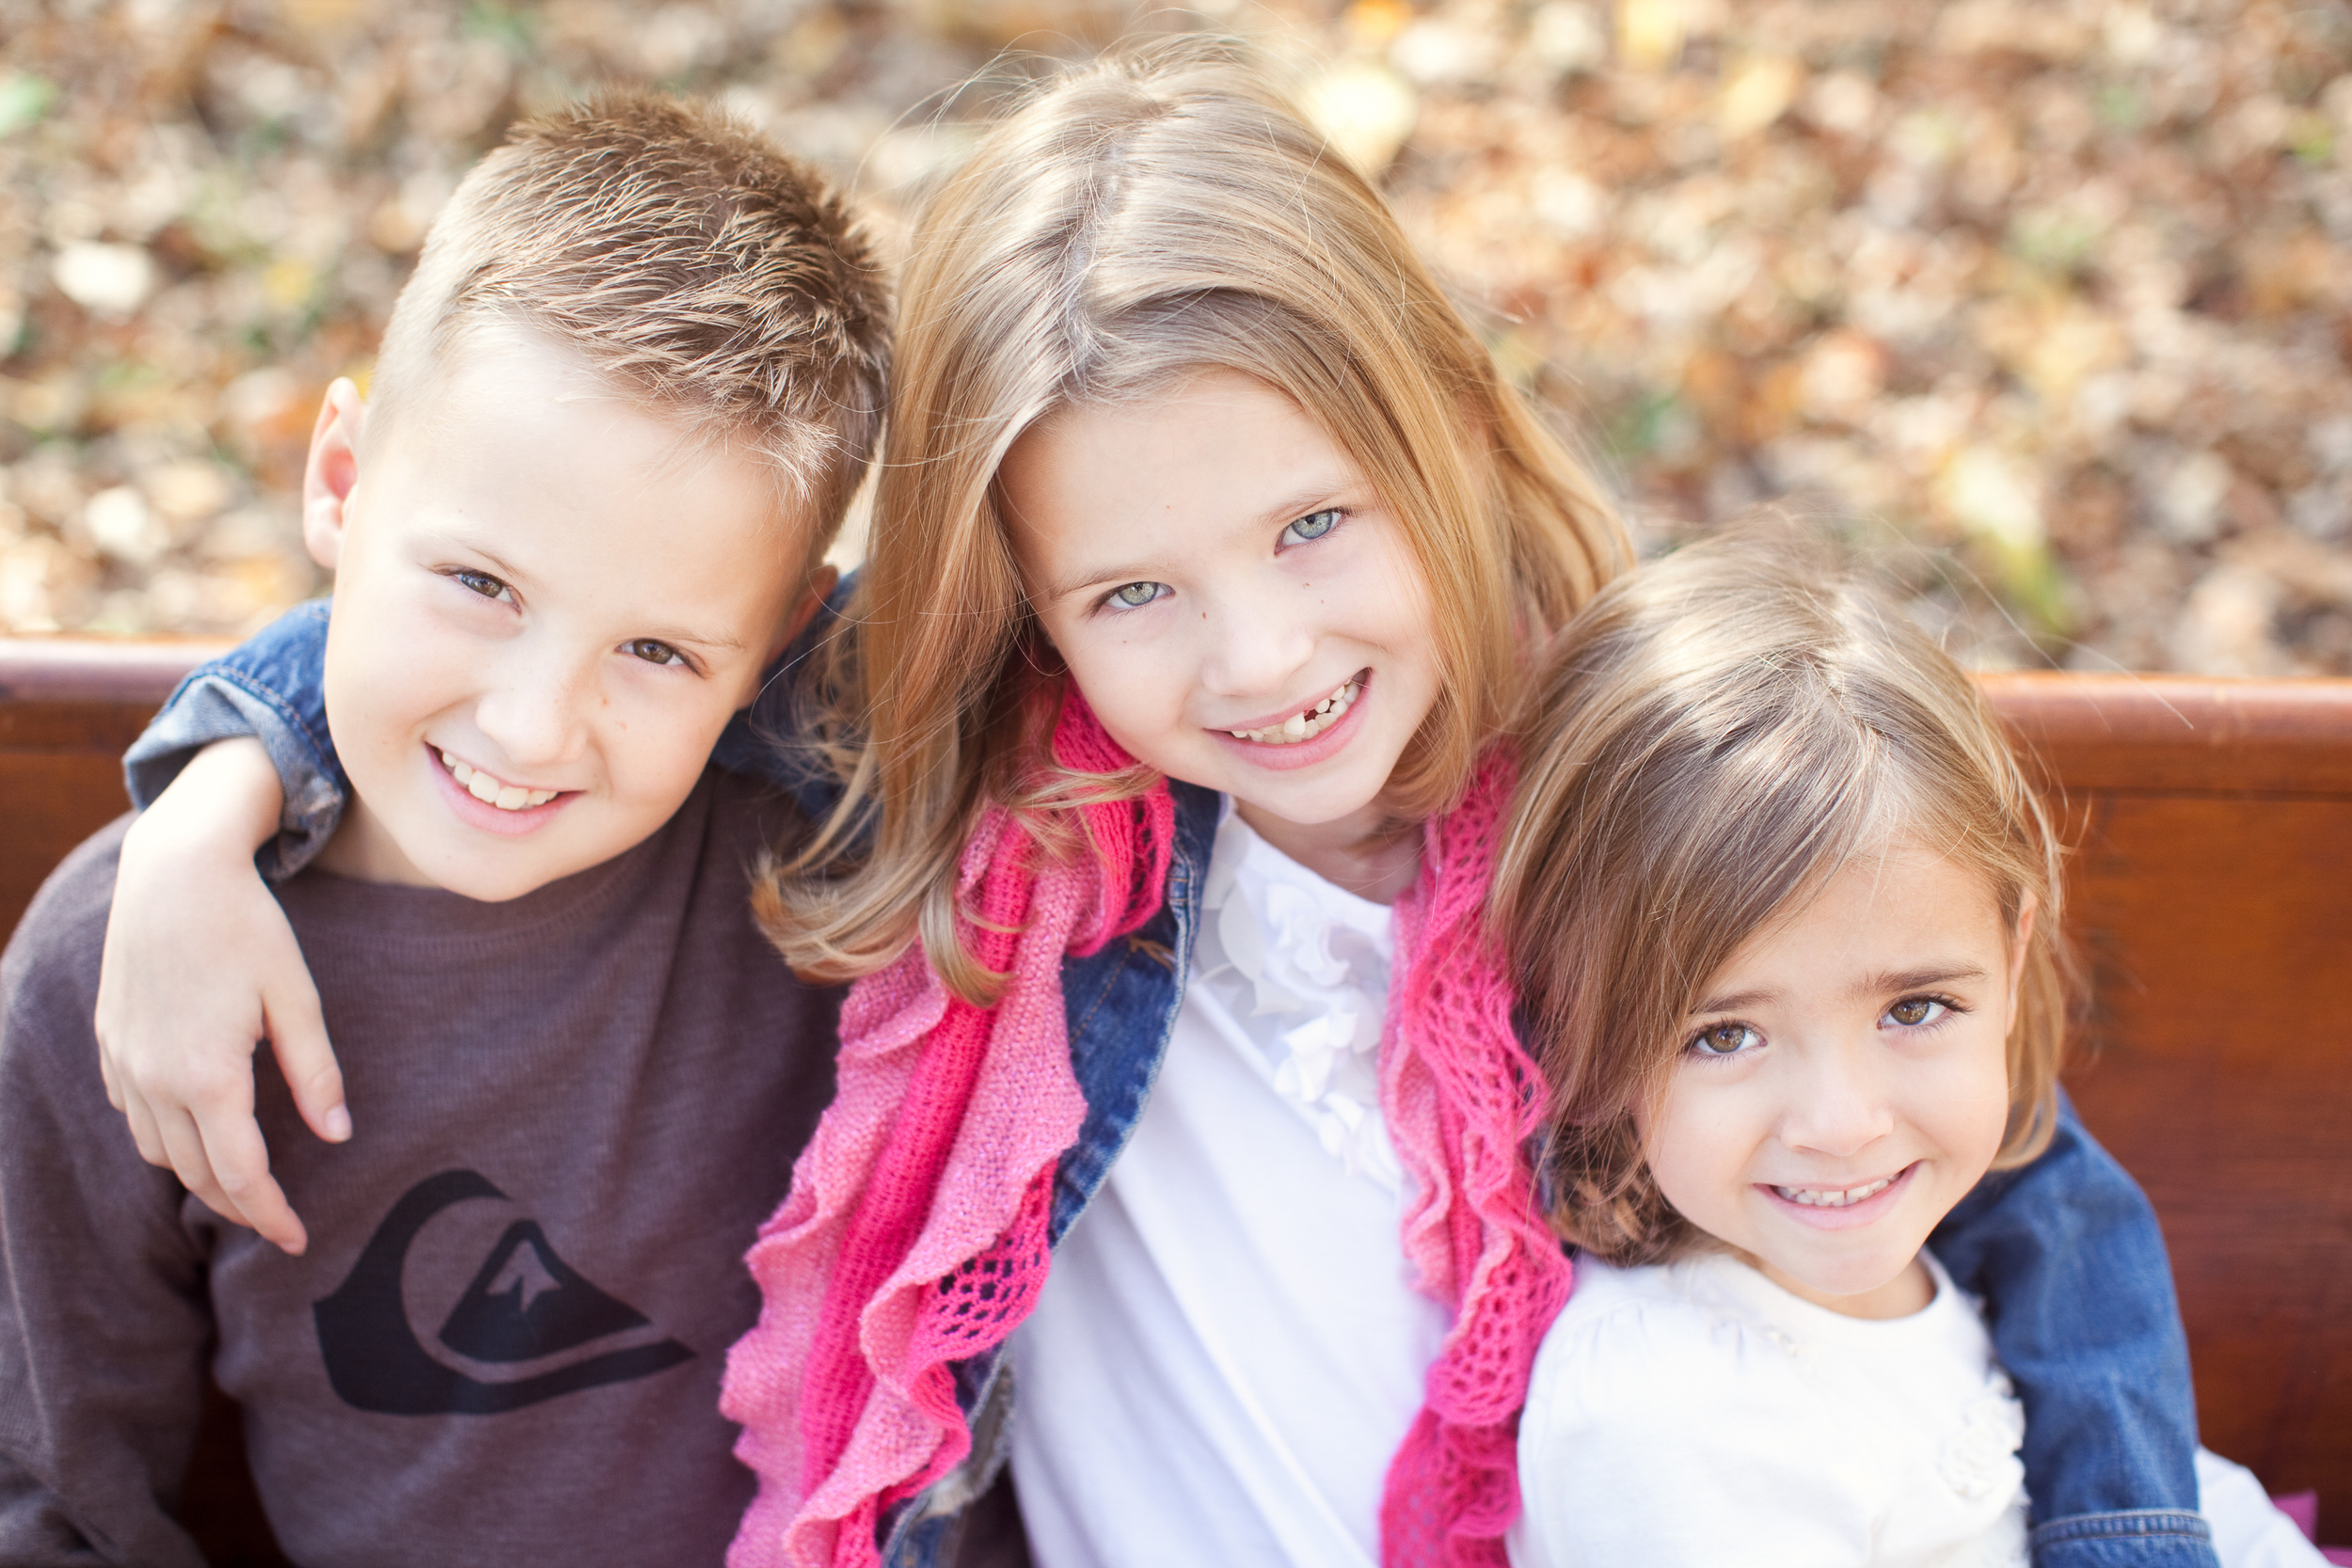 St-Louis-Family-Photographer_Ashley-Becker_0040.jpg